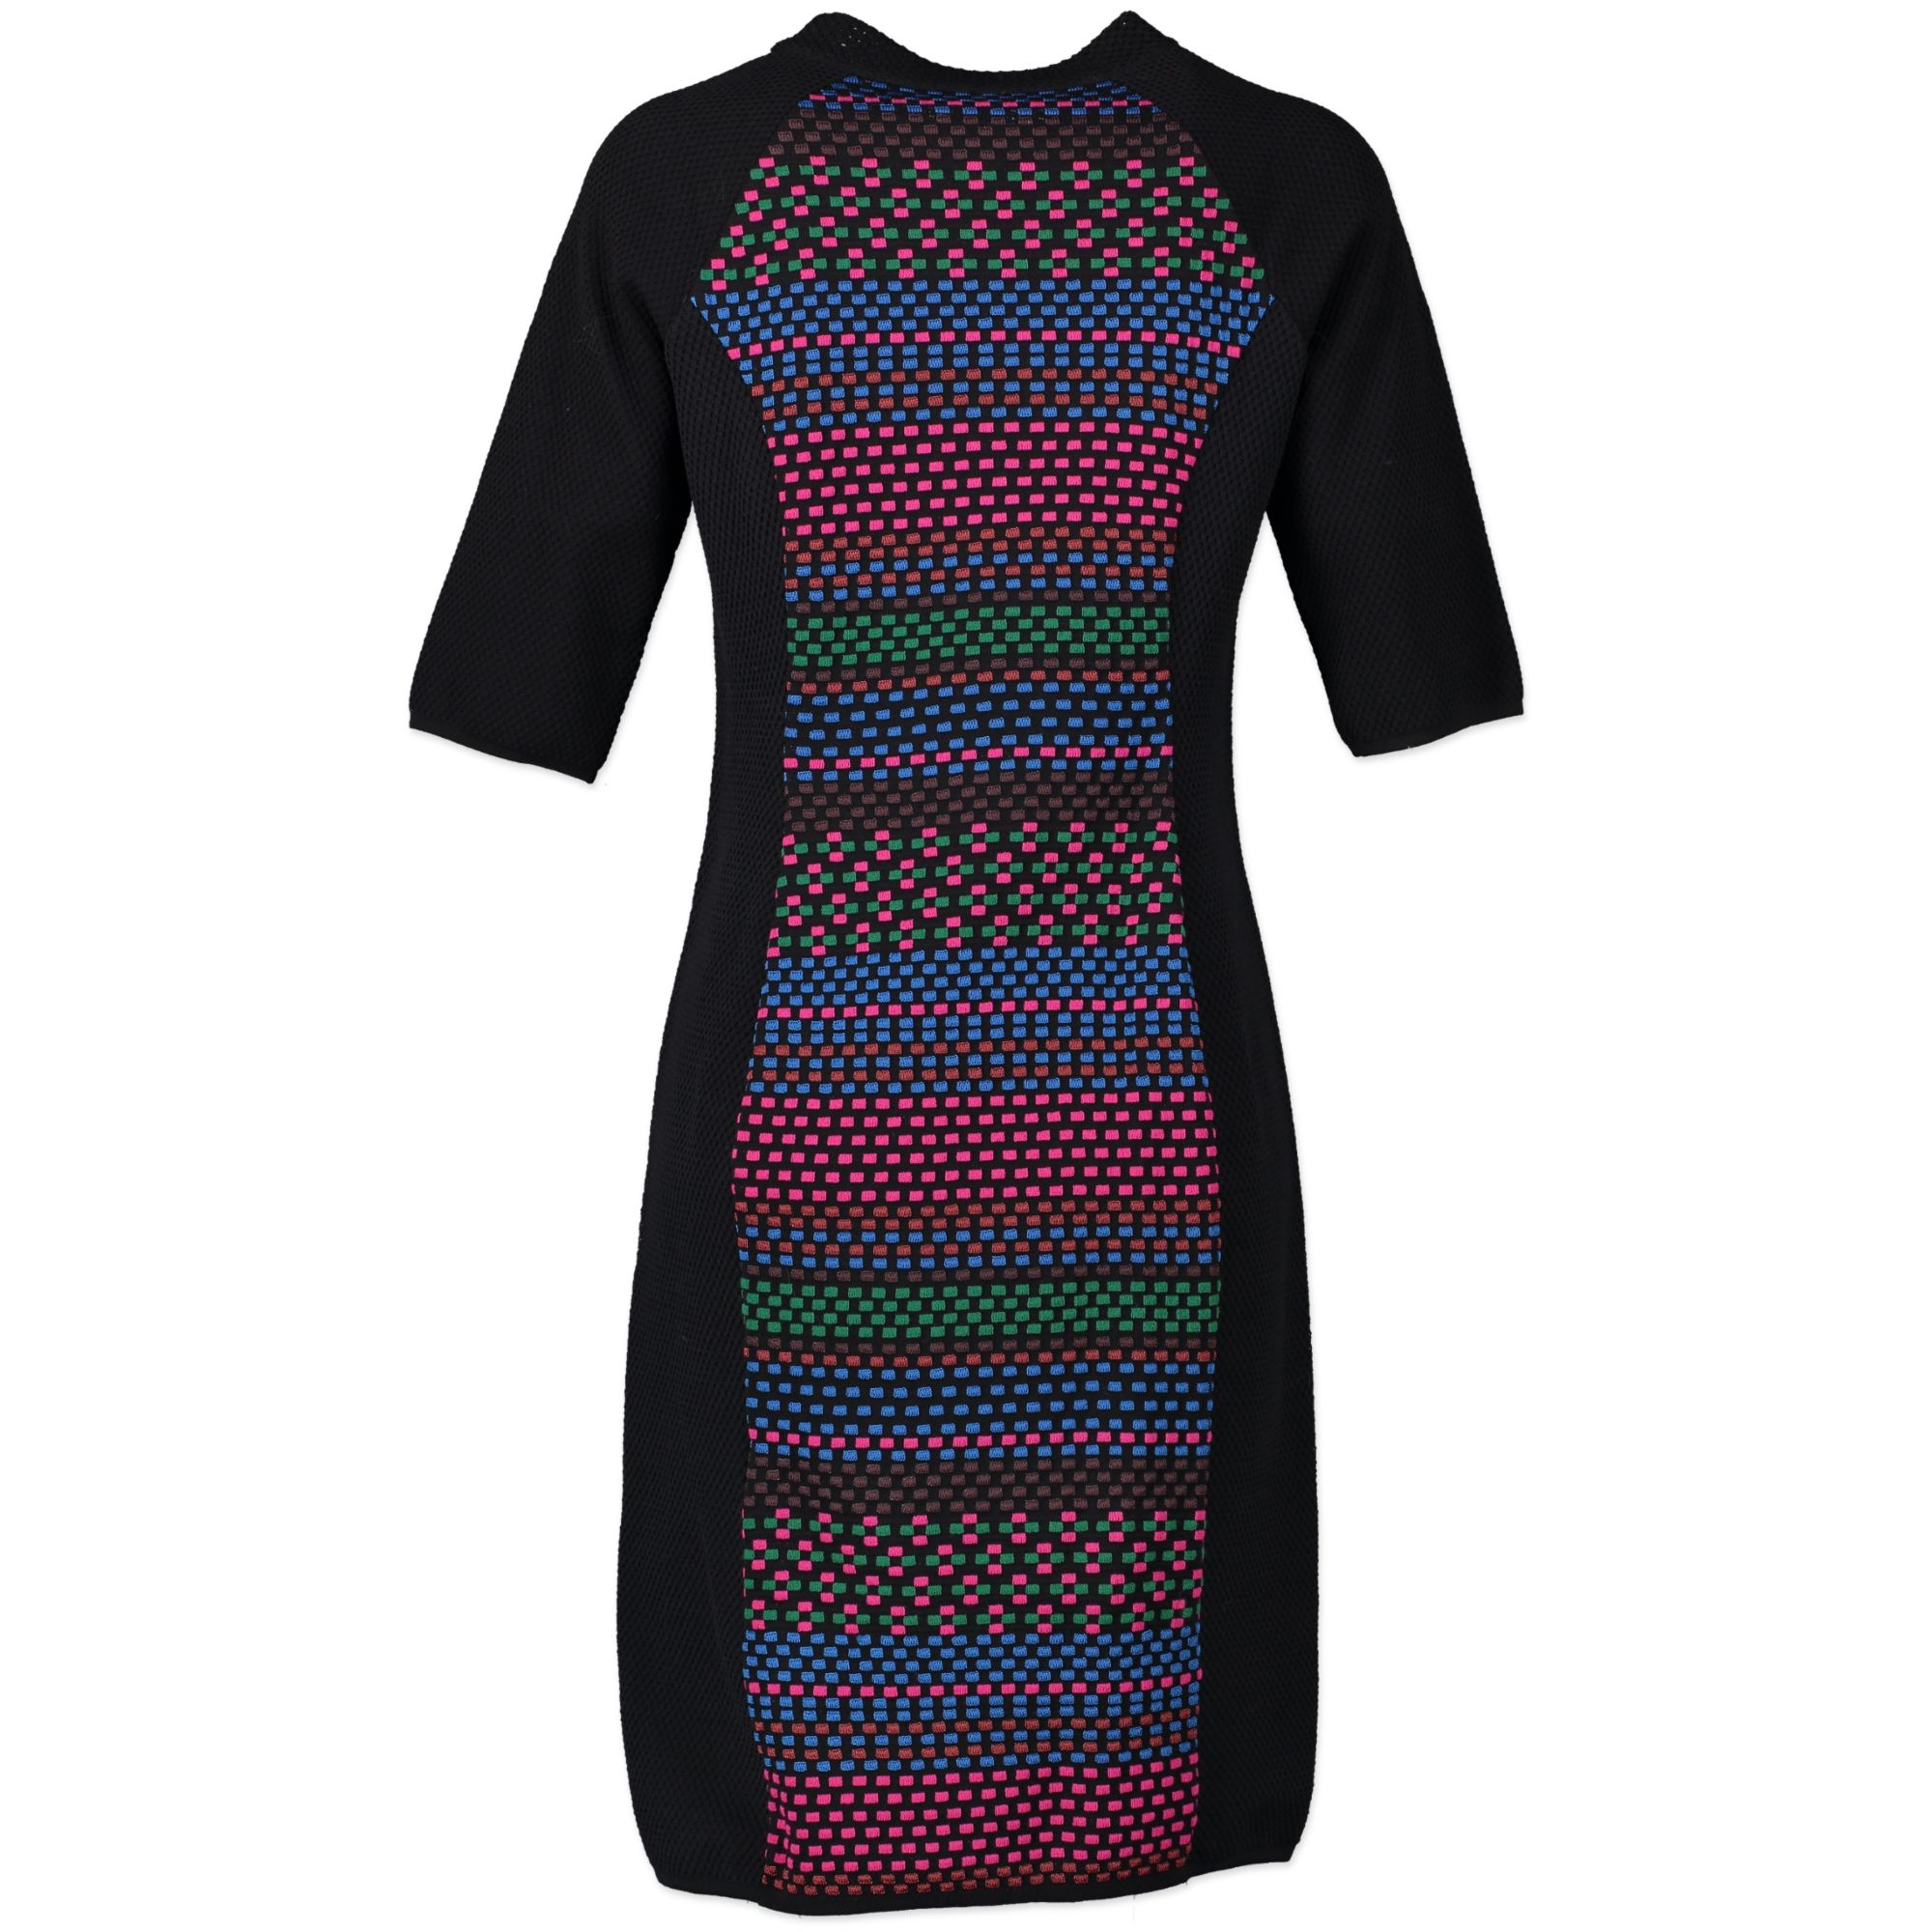 Missoni Bodycon Dress Multicolor at the right price authentic secondhand safe and secure online webshop LabelLOV luxury brand Antwerp Belgium